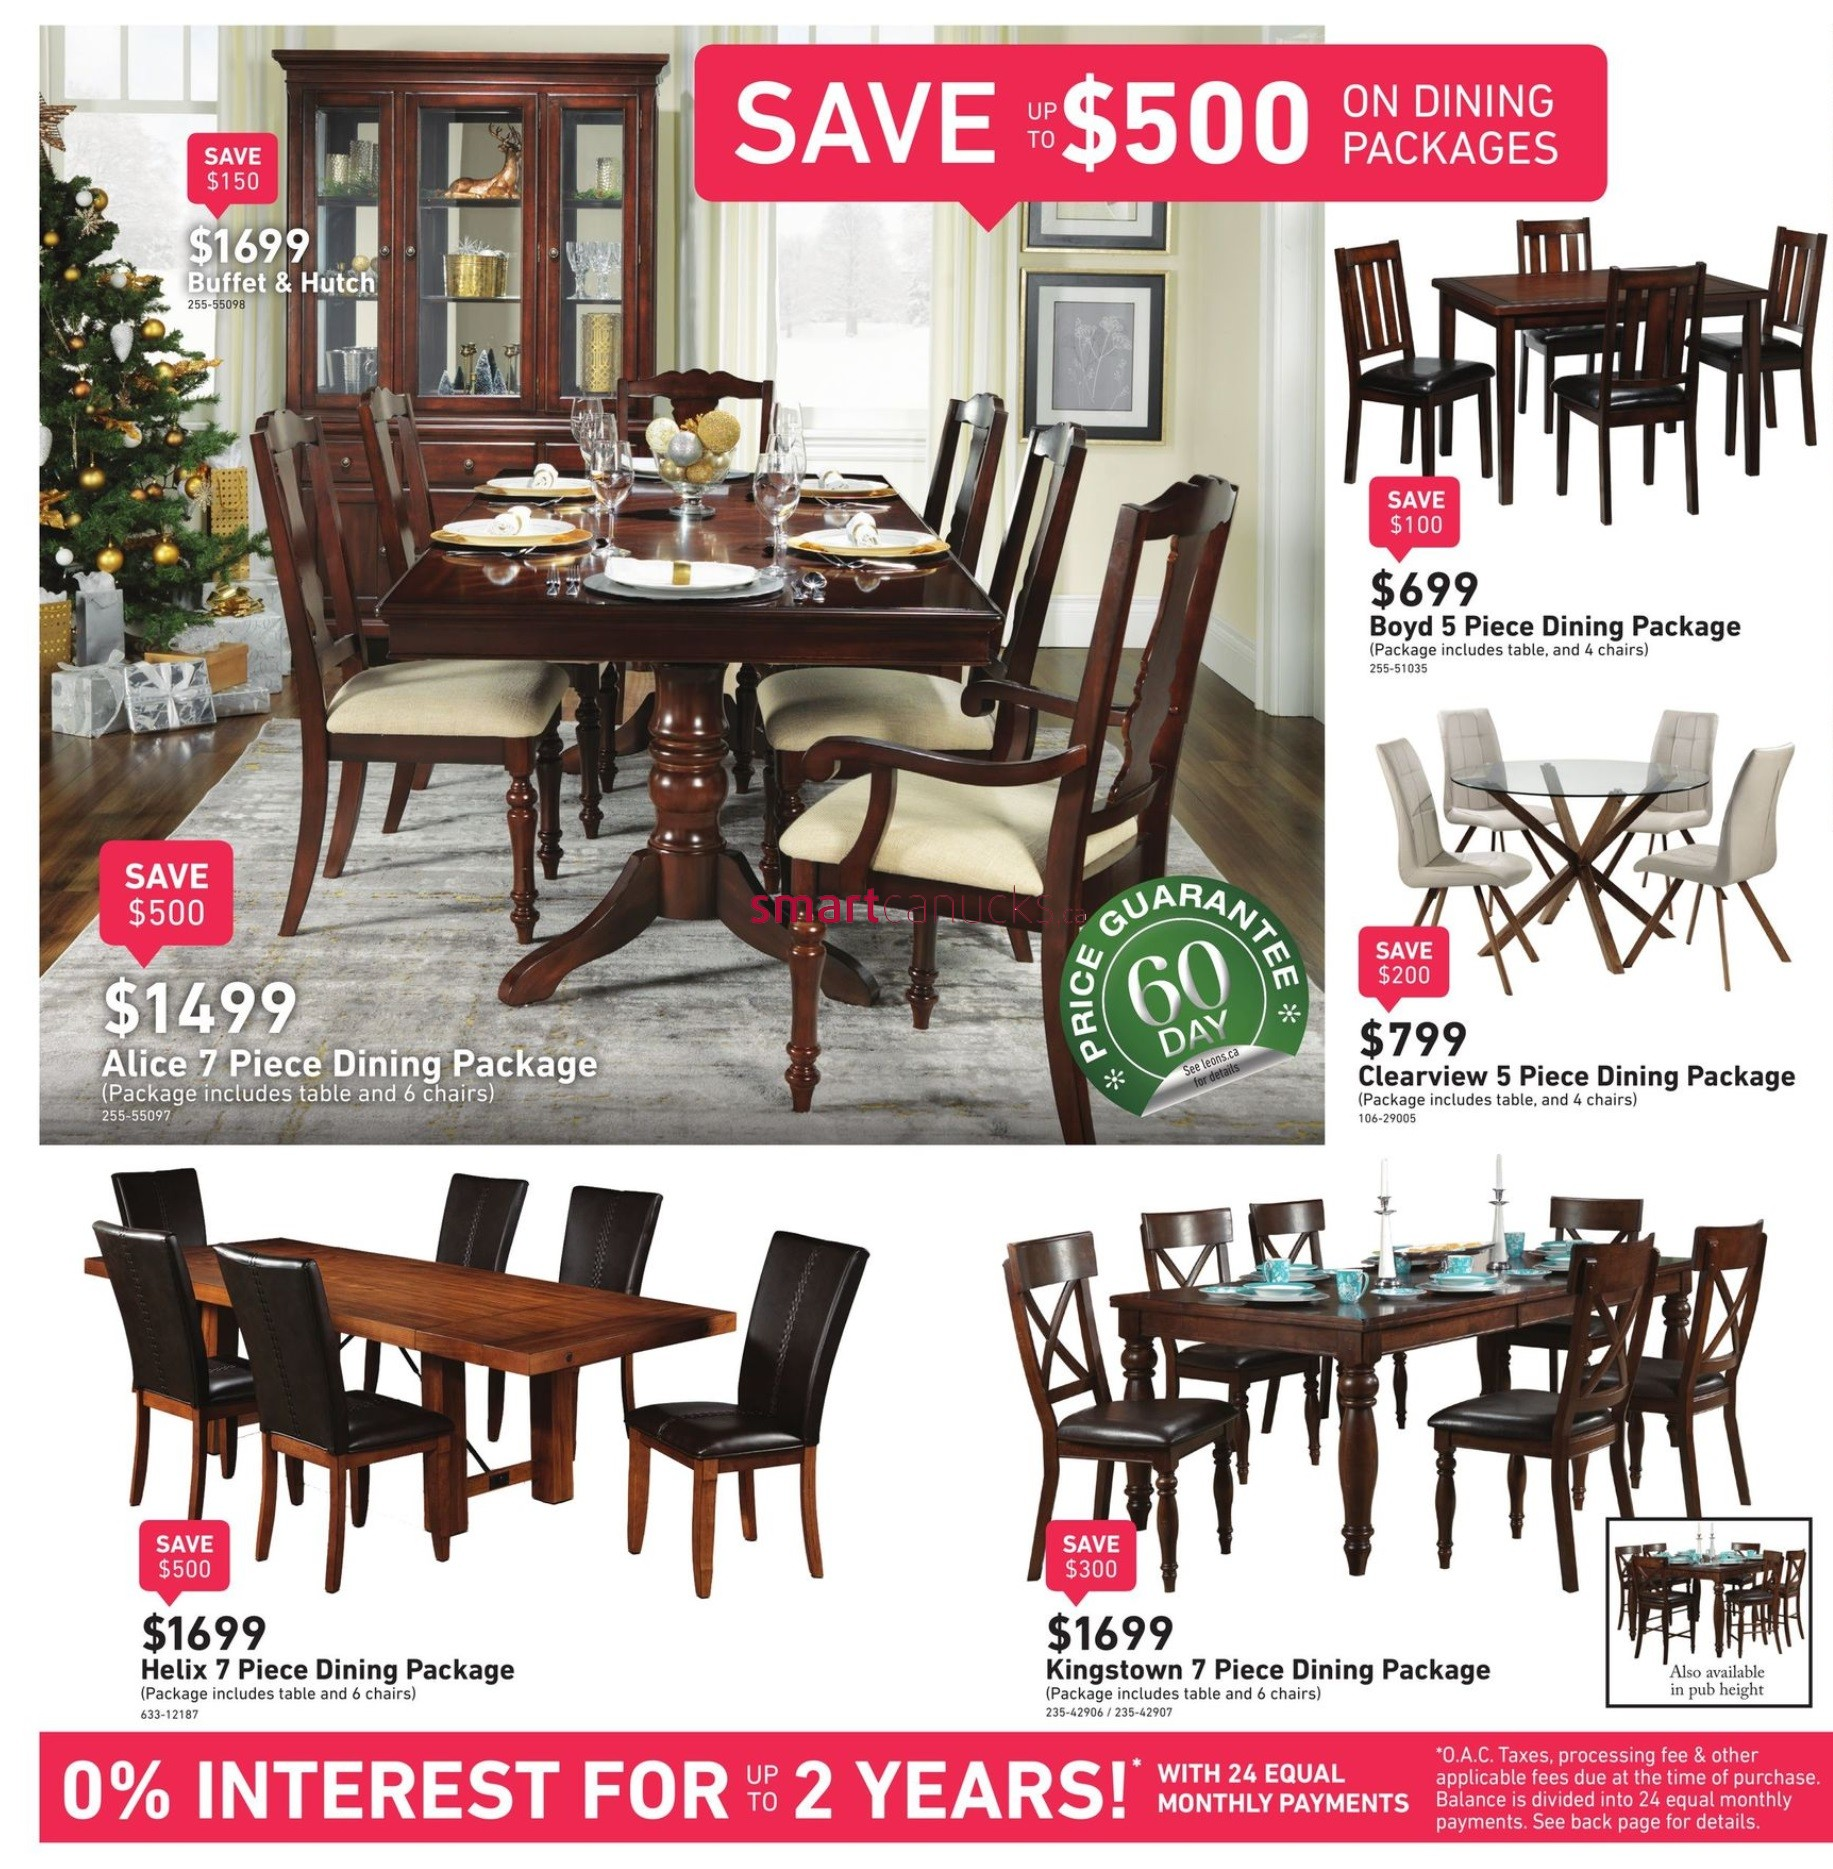 Leons Furniture Deals 10 Year Treasury Bond Coupon Rate